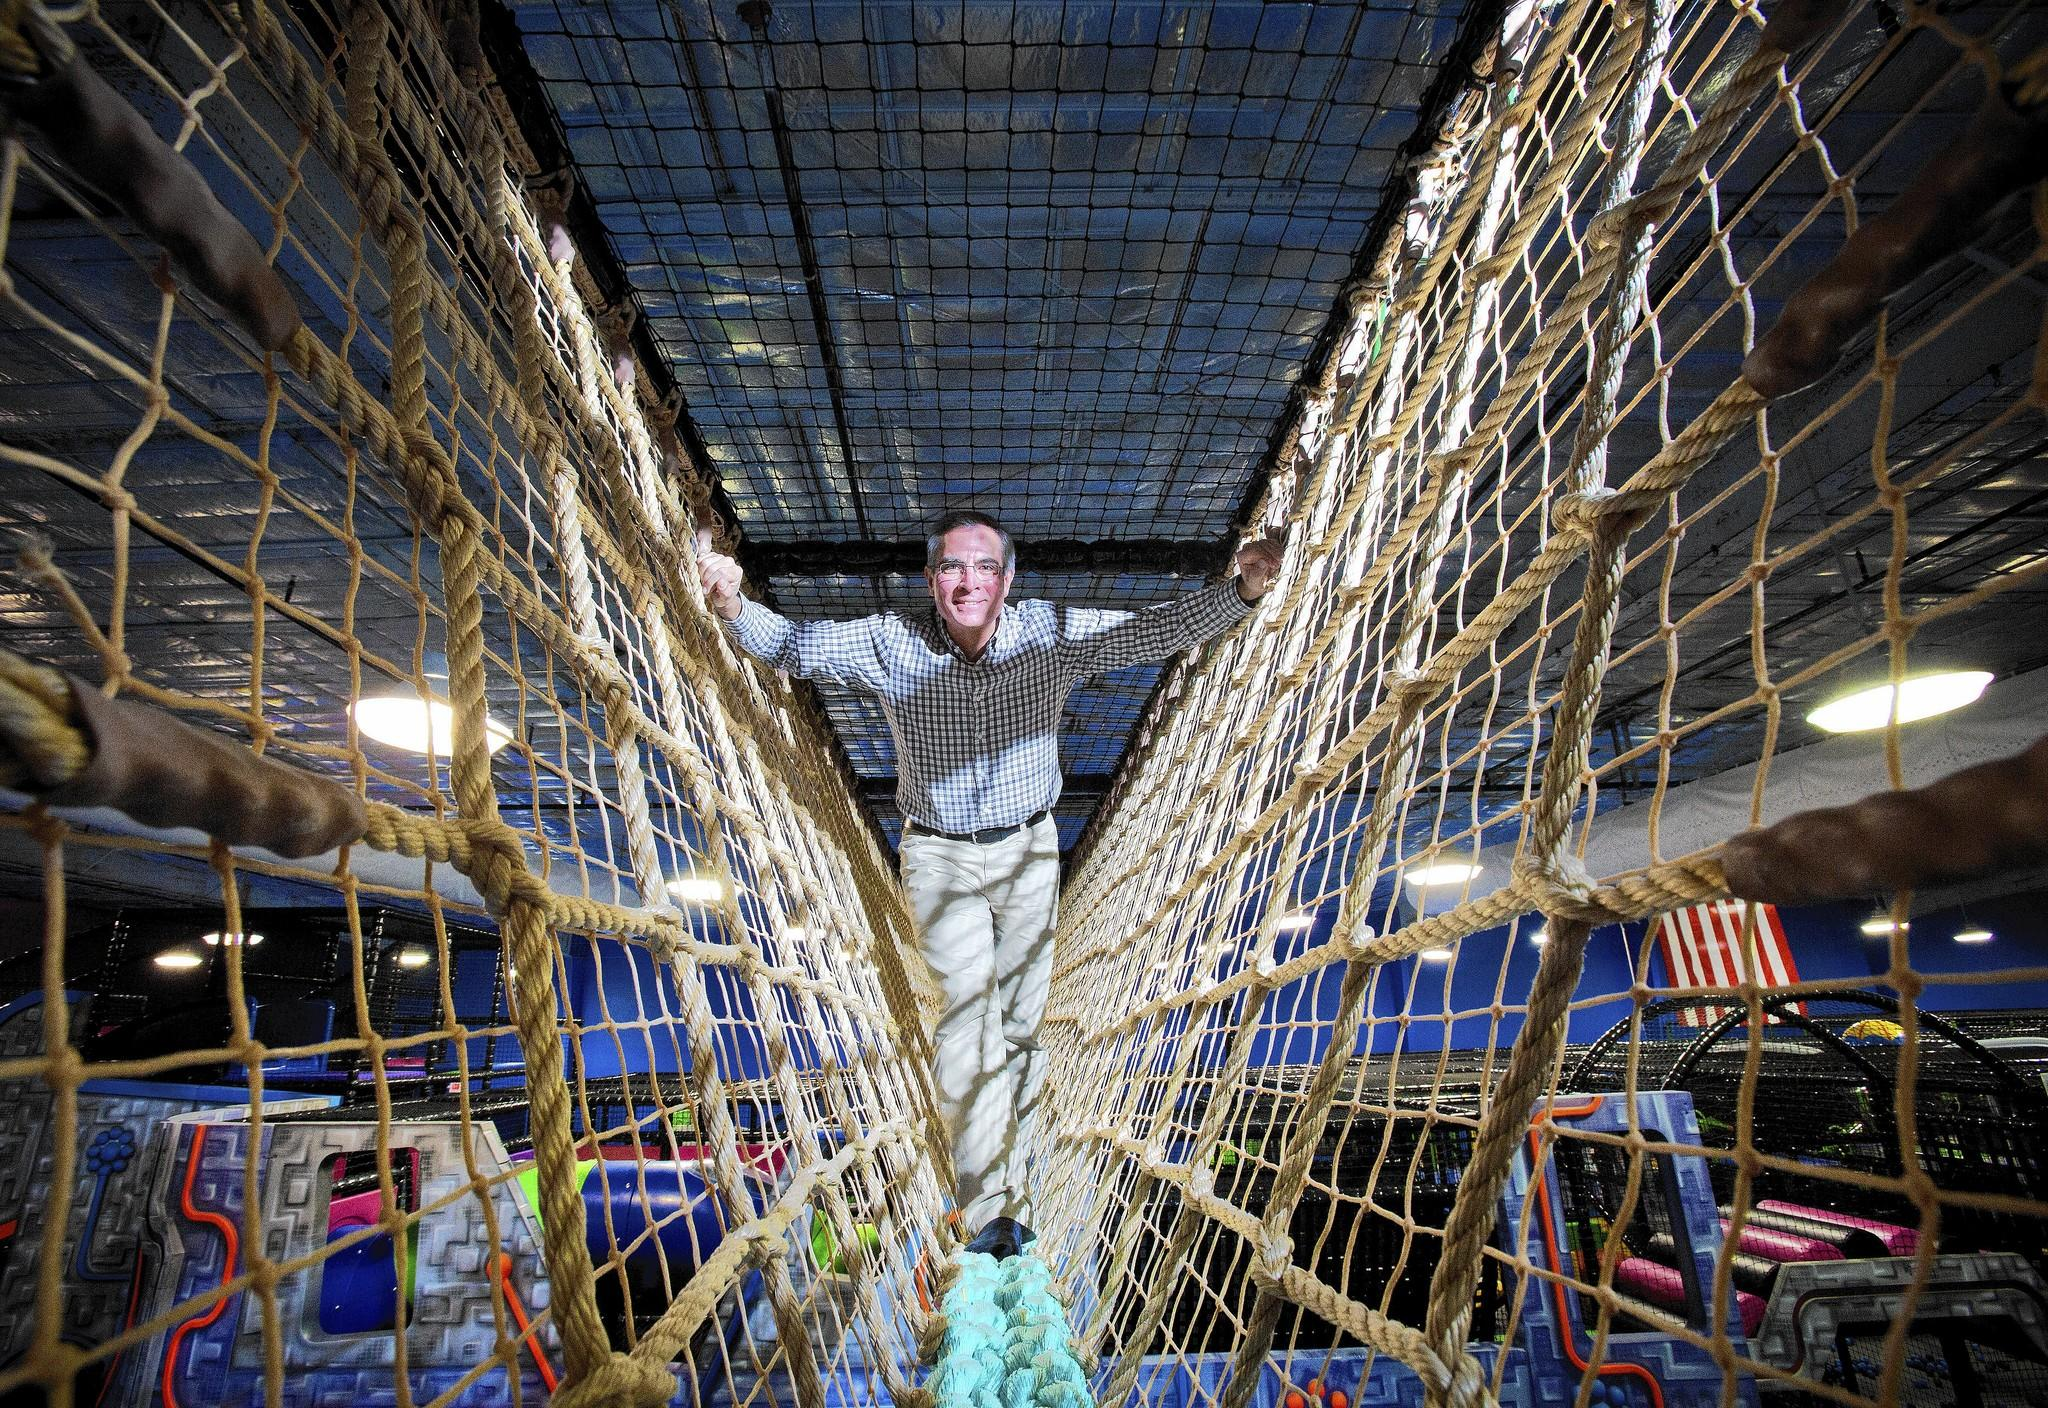 Bruce Roudebush, CEO Galaxy Fun Orlando, stands on one of the rope bridges high above the ground inside of the indoor playground on February 20, 2014. The large indoor playground will be opening later this month.